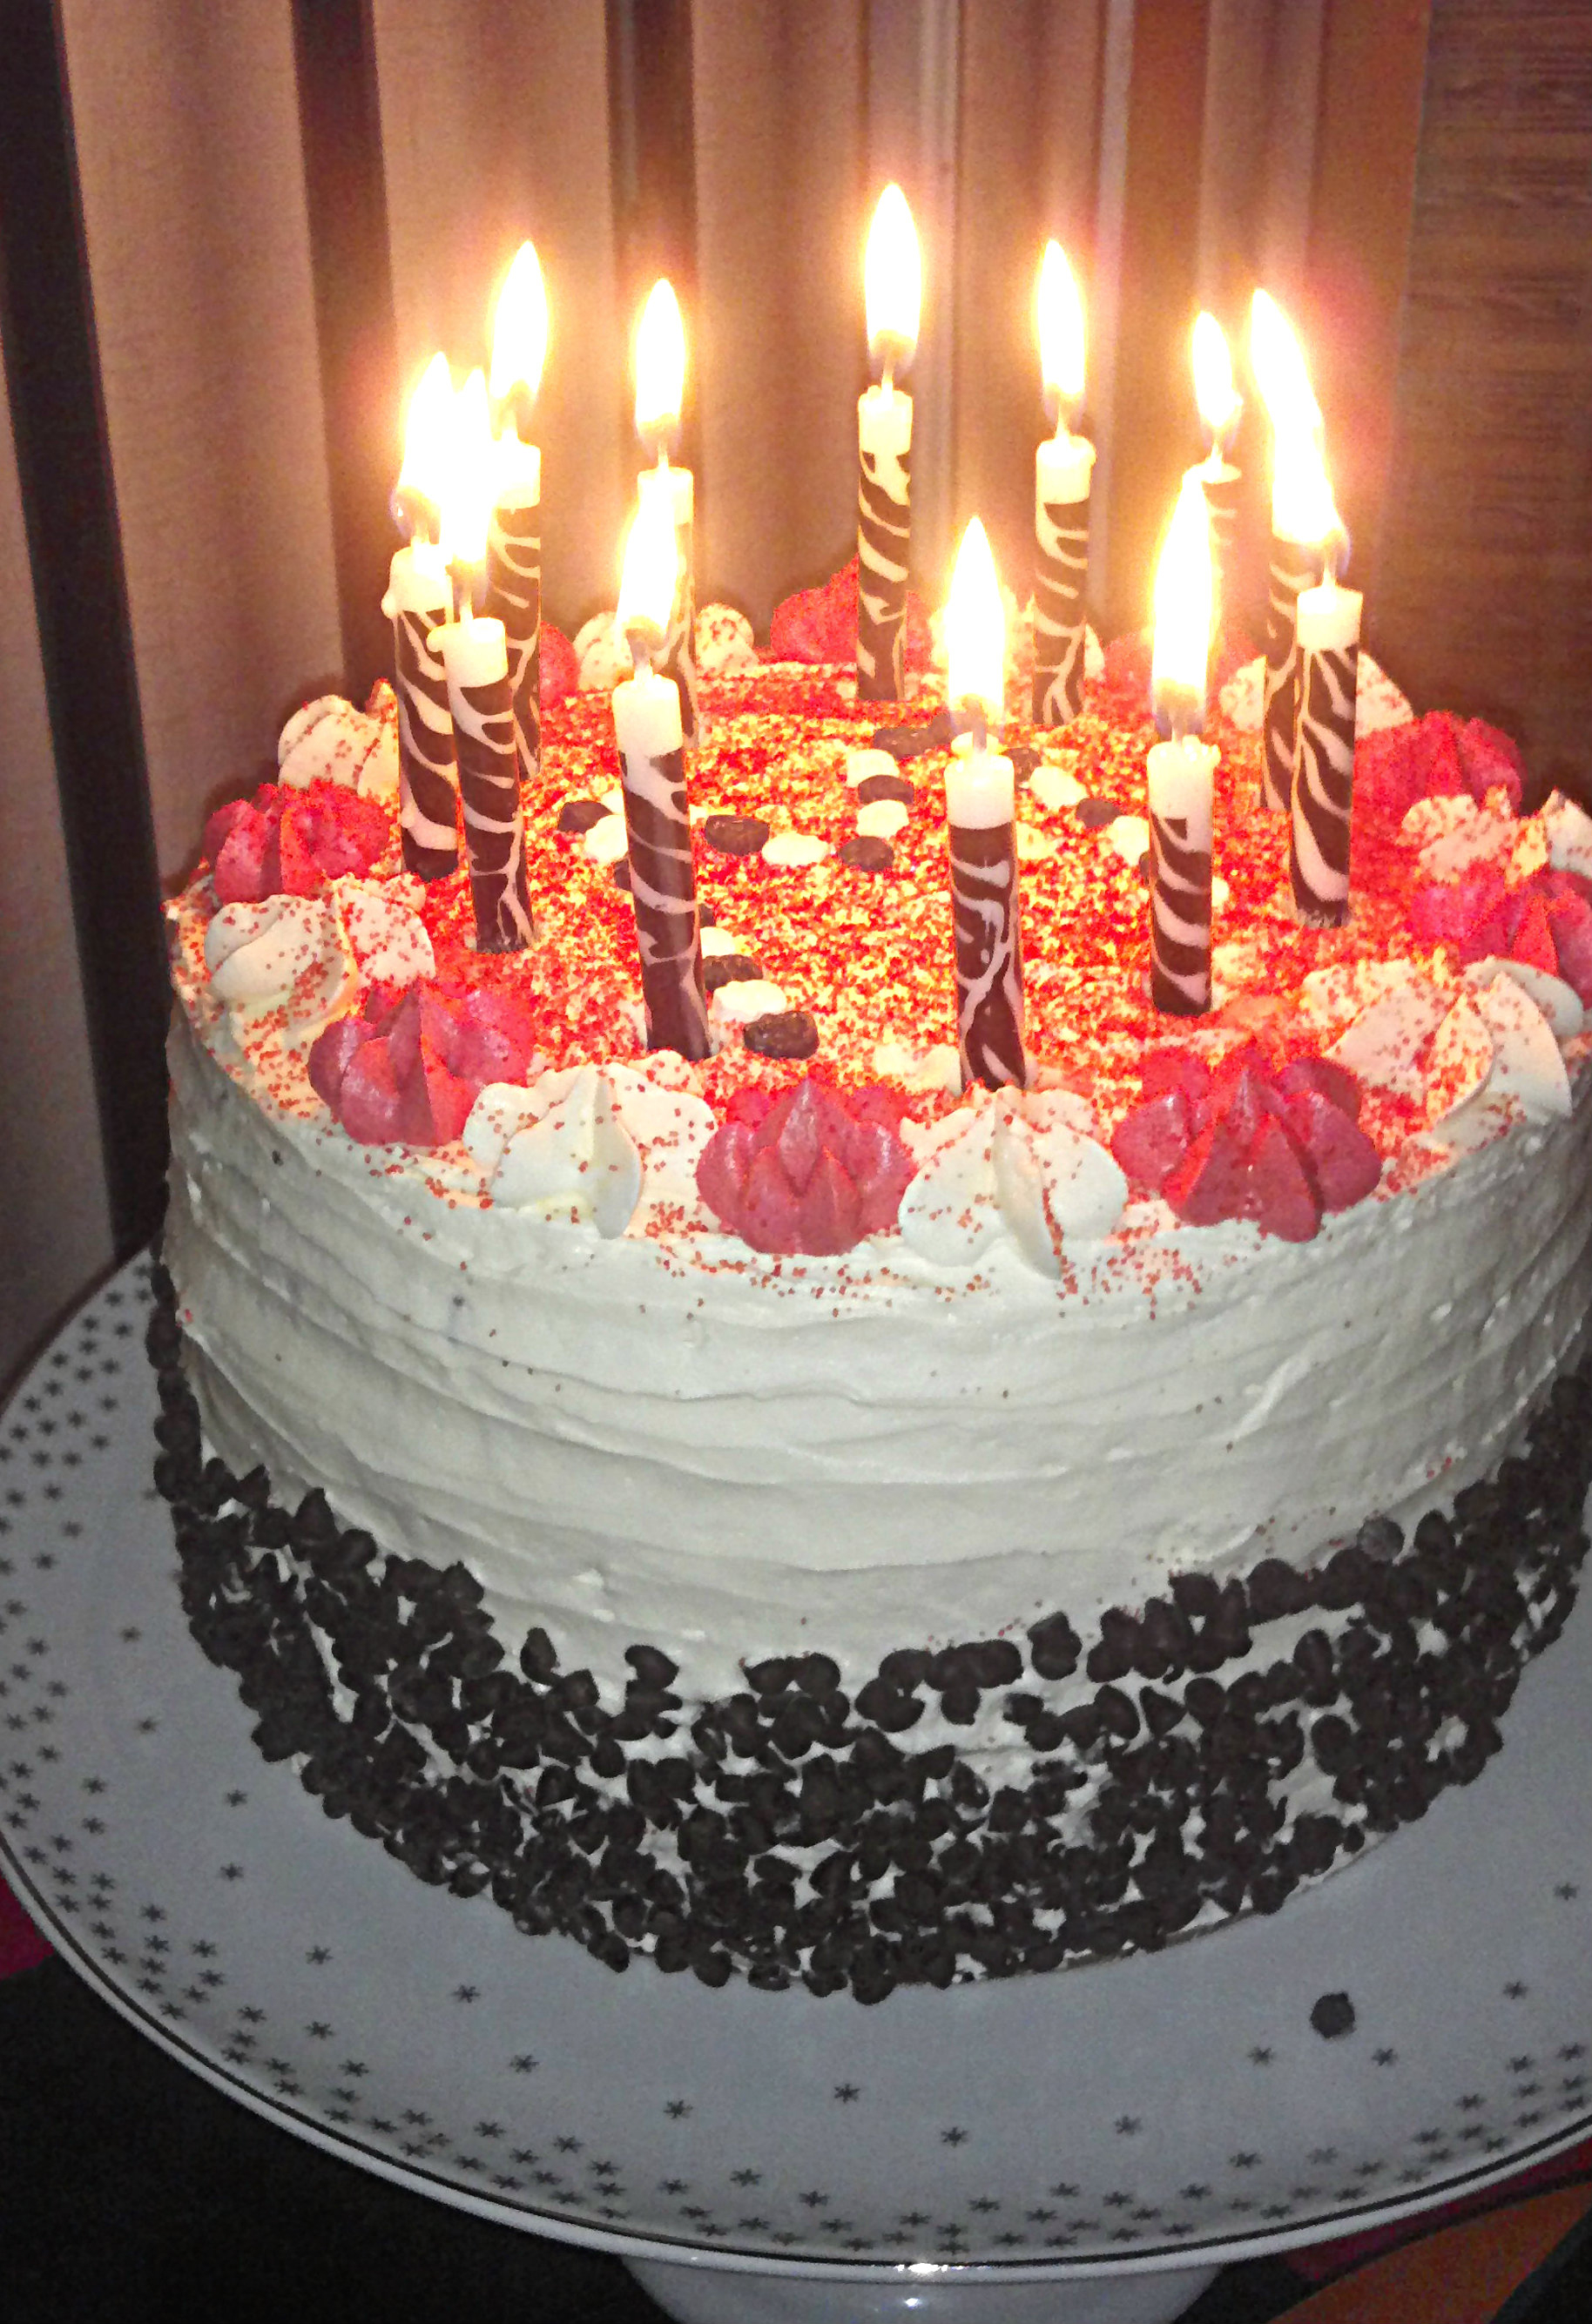 Birthday Cakes With Candles Birthday Cake With Candles Savorgoodfood